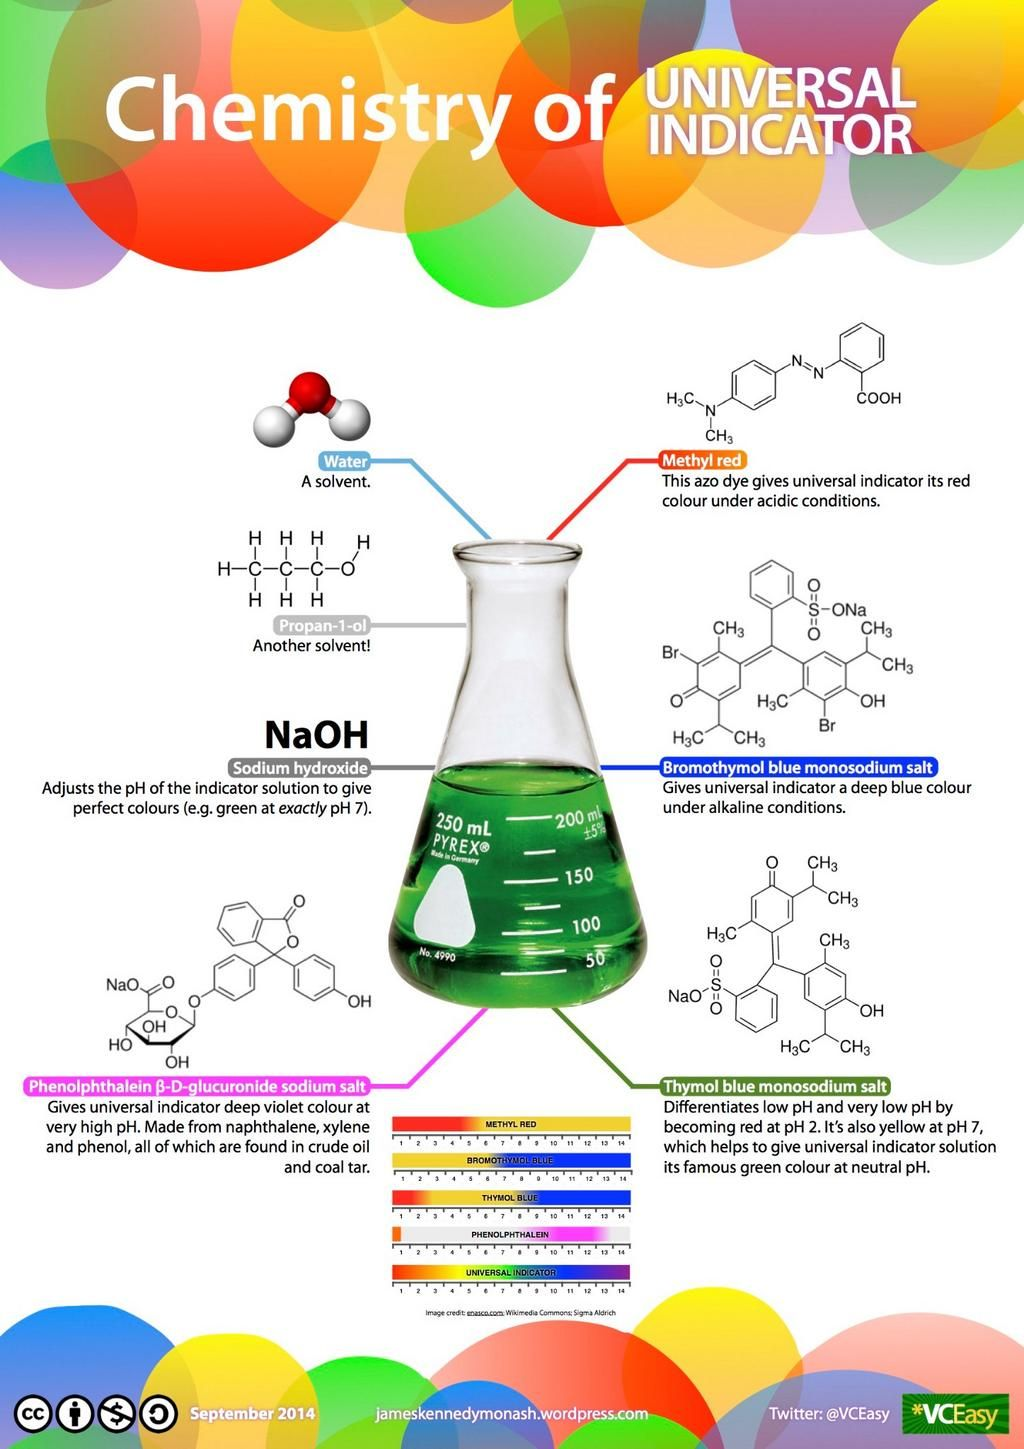 Chemistry Of Universal Indicator By Vceasy